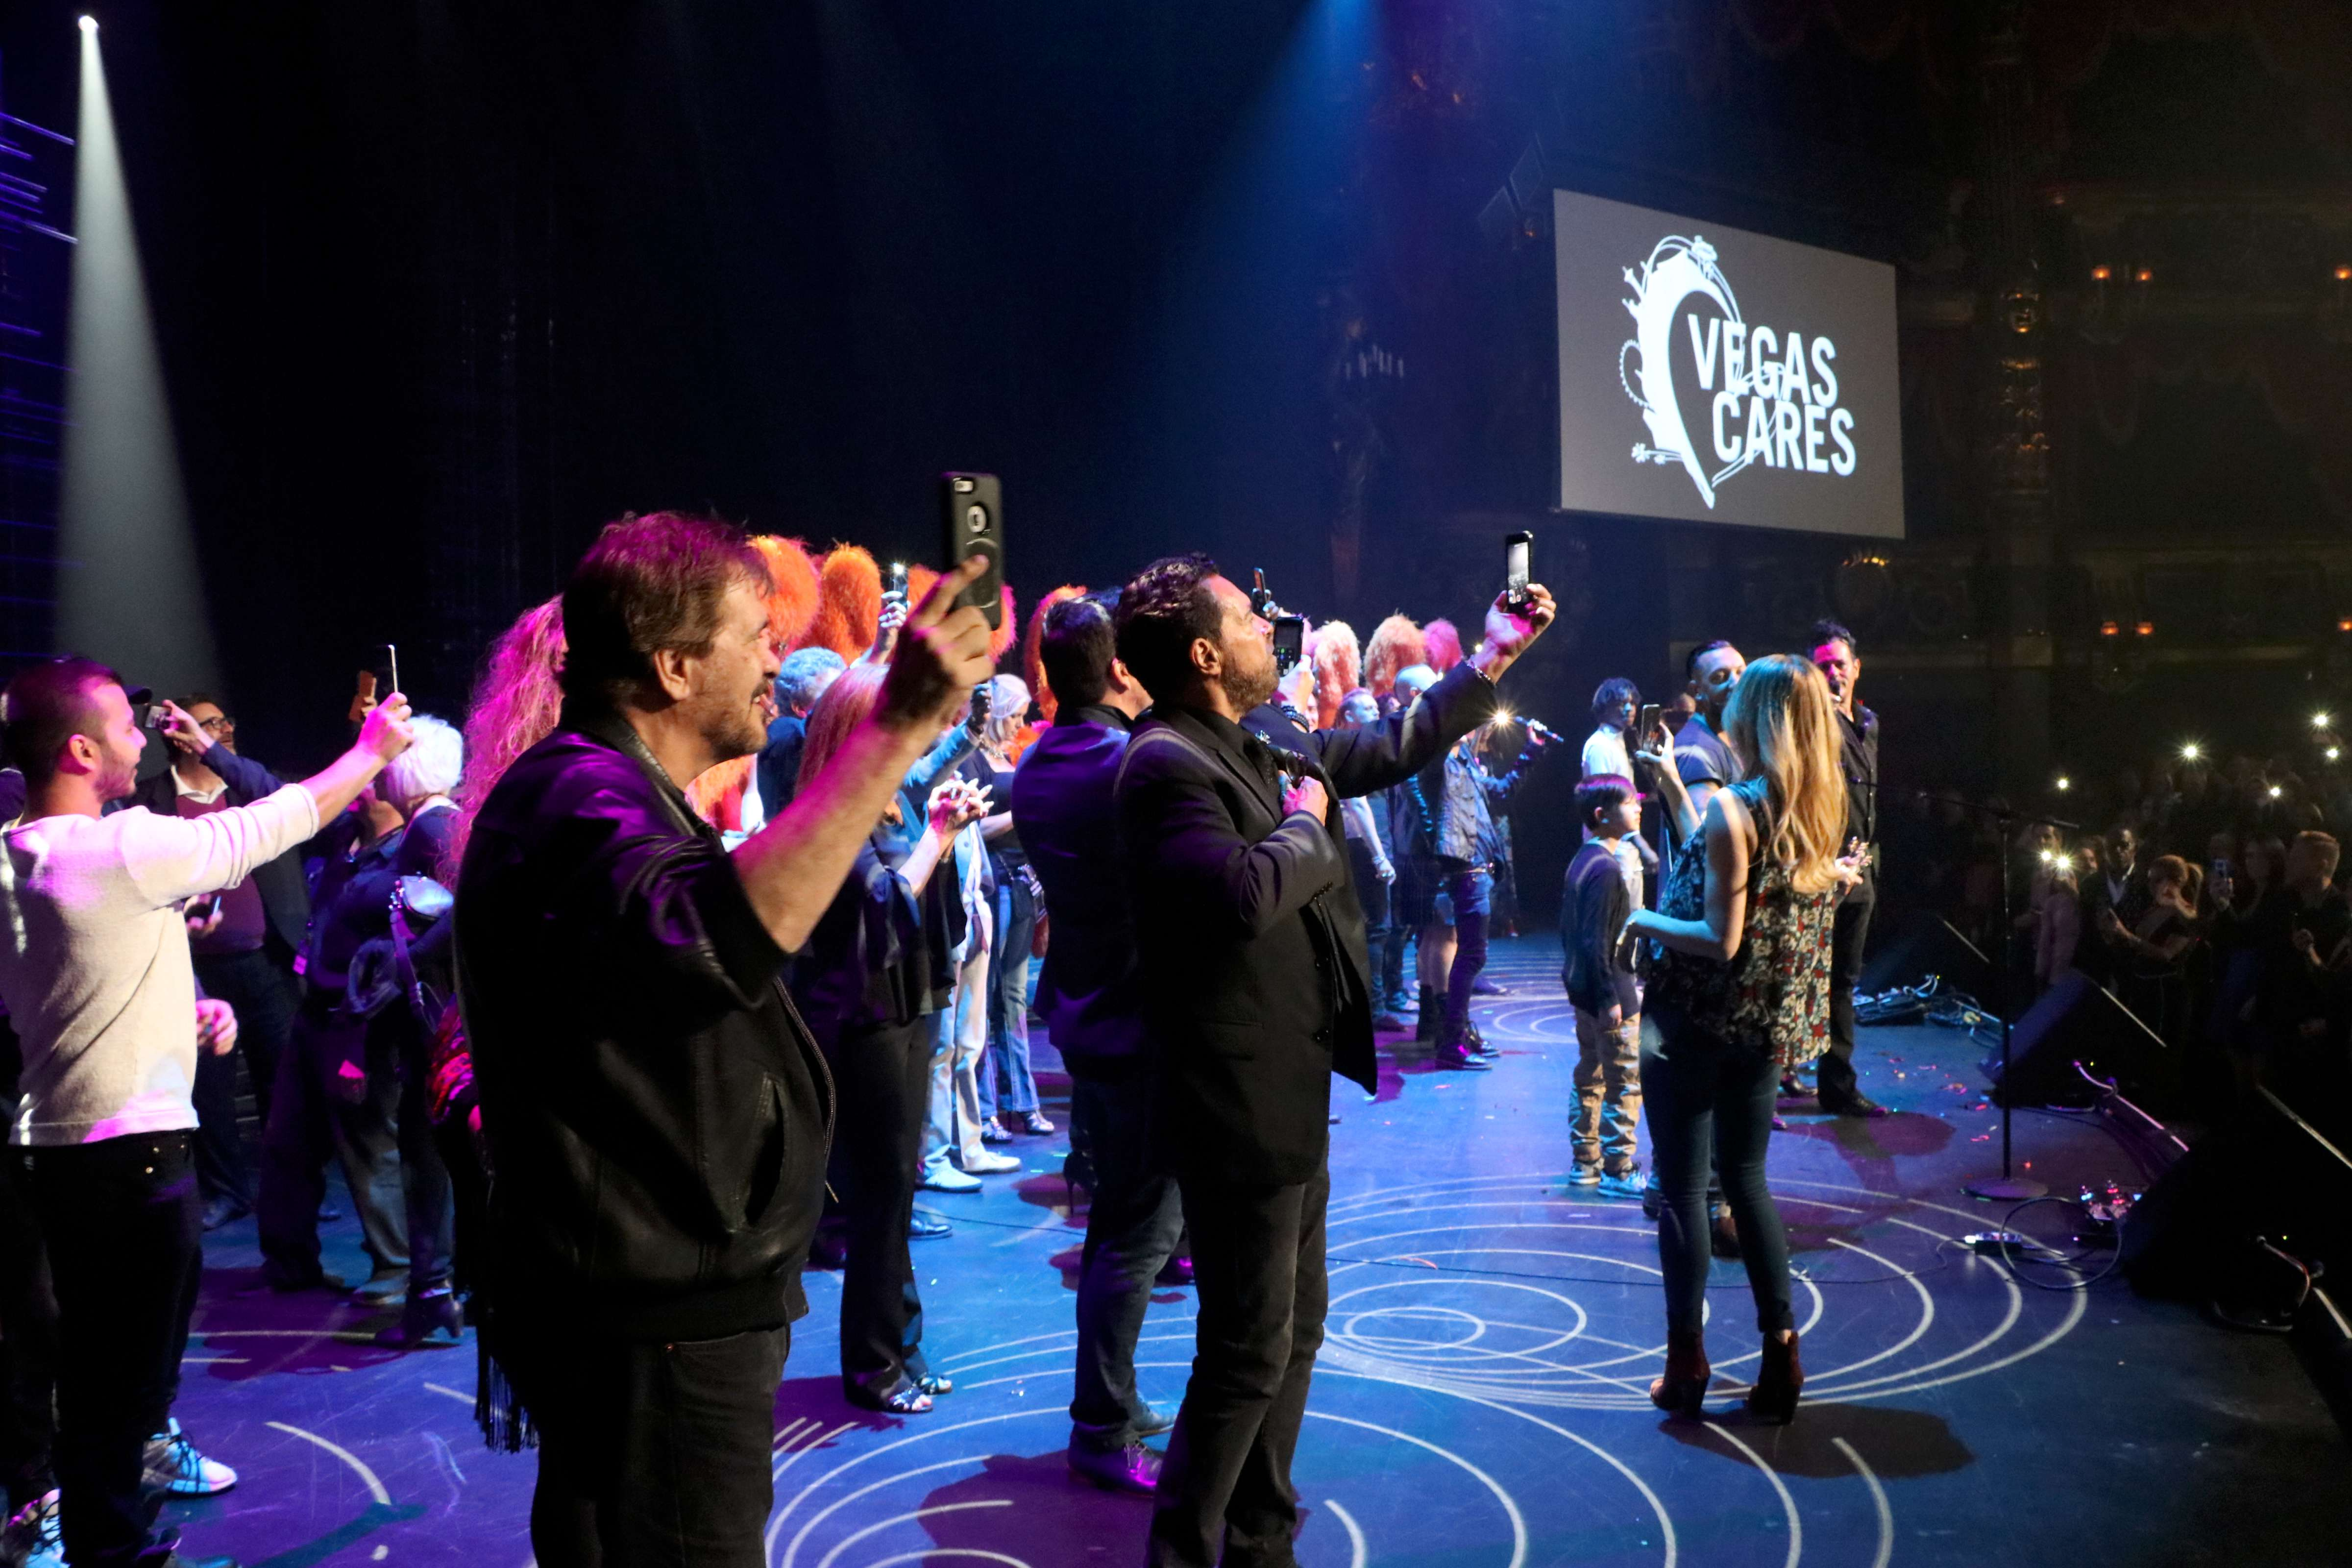 """Cast of """"Vegas Cares"""" joins the band on stage"""